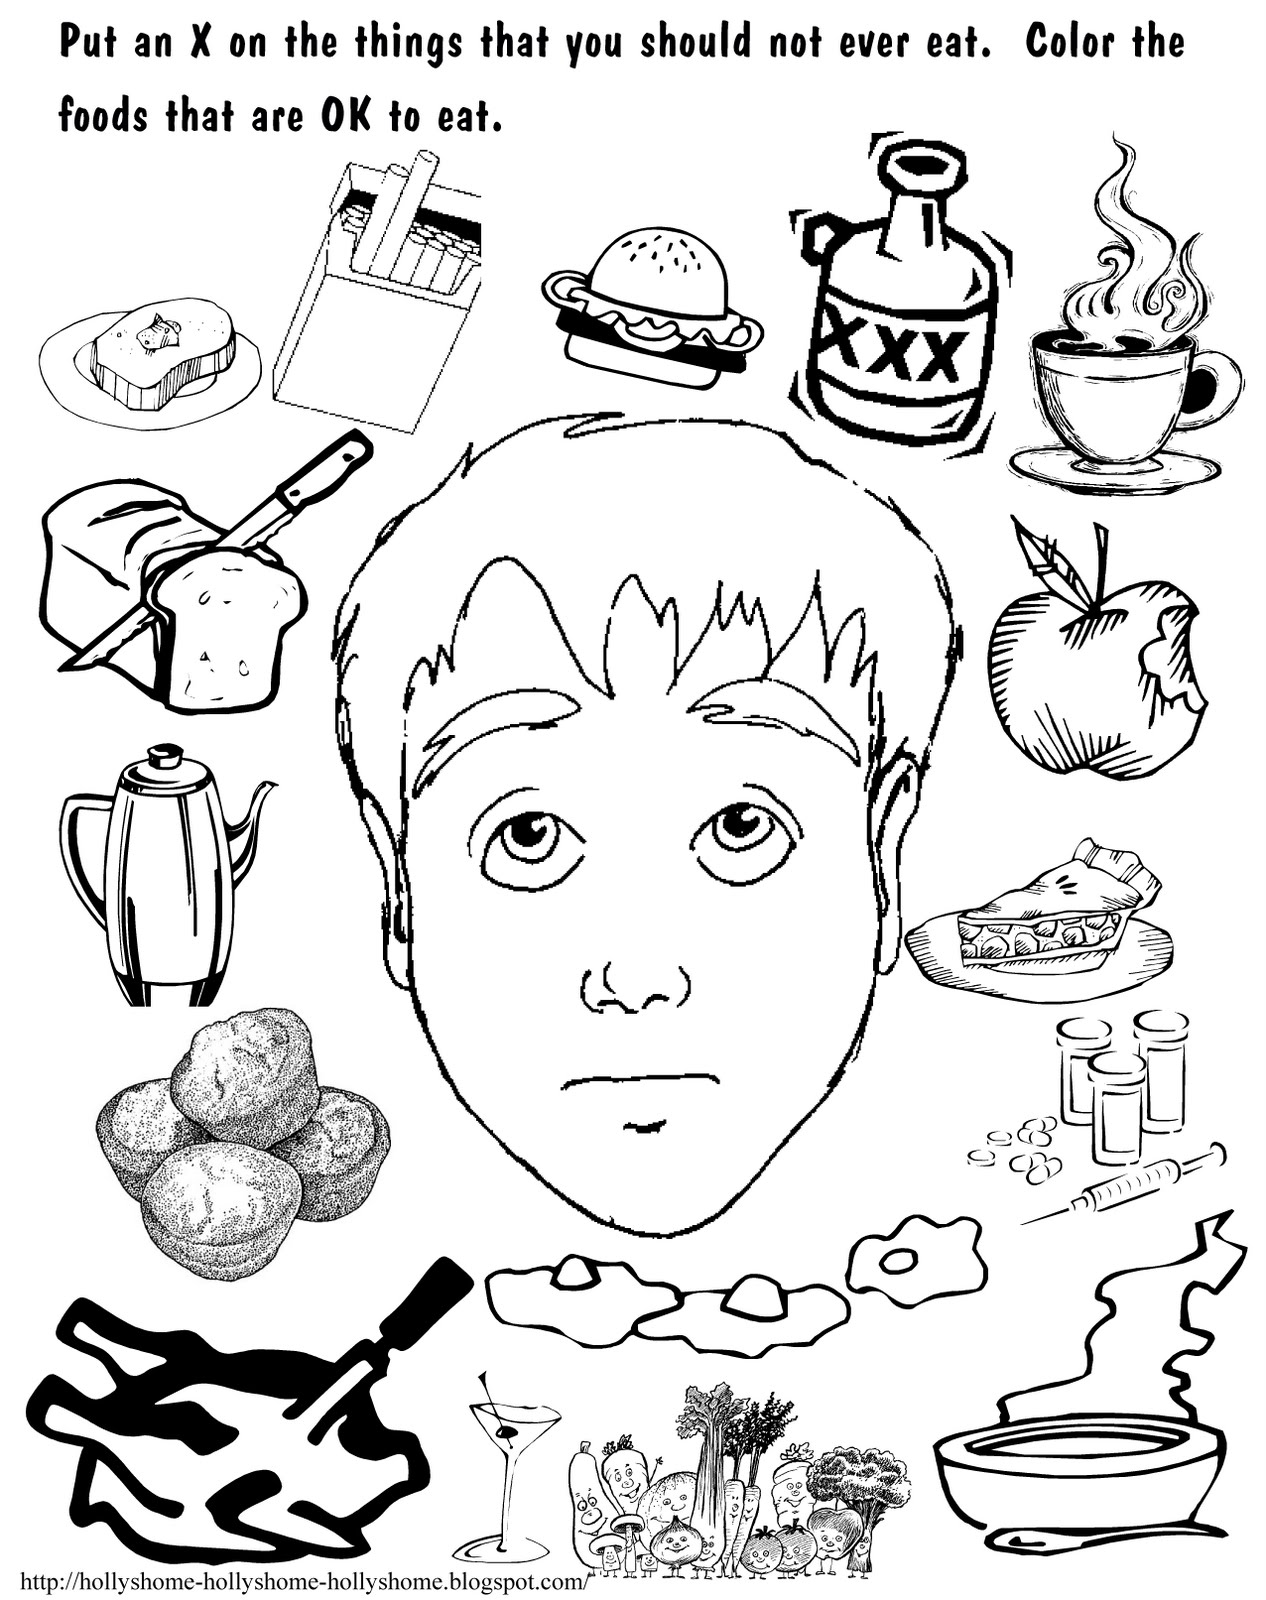 kids coloring pages on wisdom - photo#31